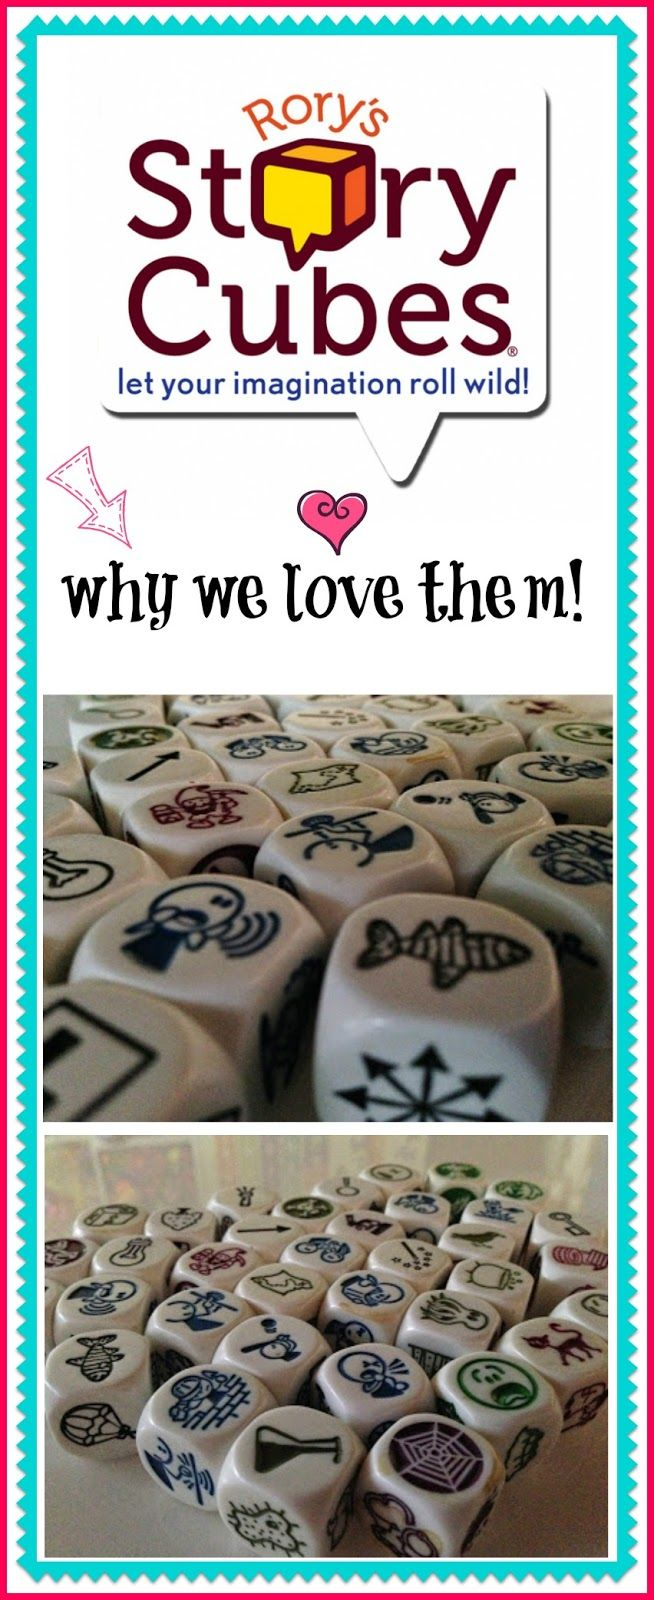 Rory Story Cubes and why we love them   Epic Childhood